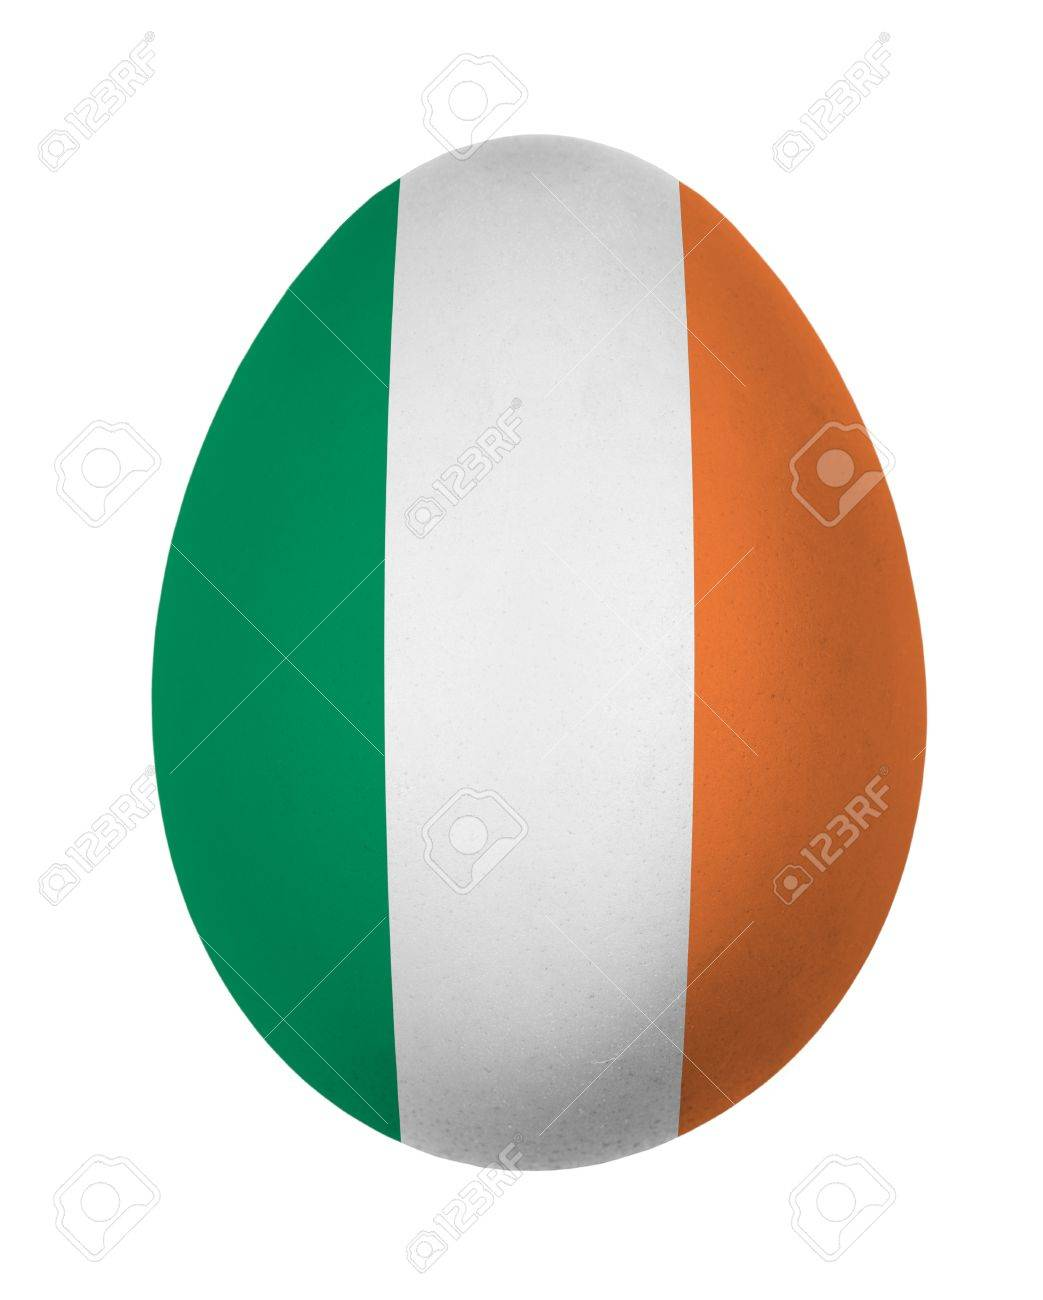 Colorful Ireland Flag Easter Egg Isolated On White Background Stock Photo Picture And Royalty Free Image Image 17524908